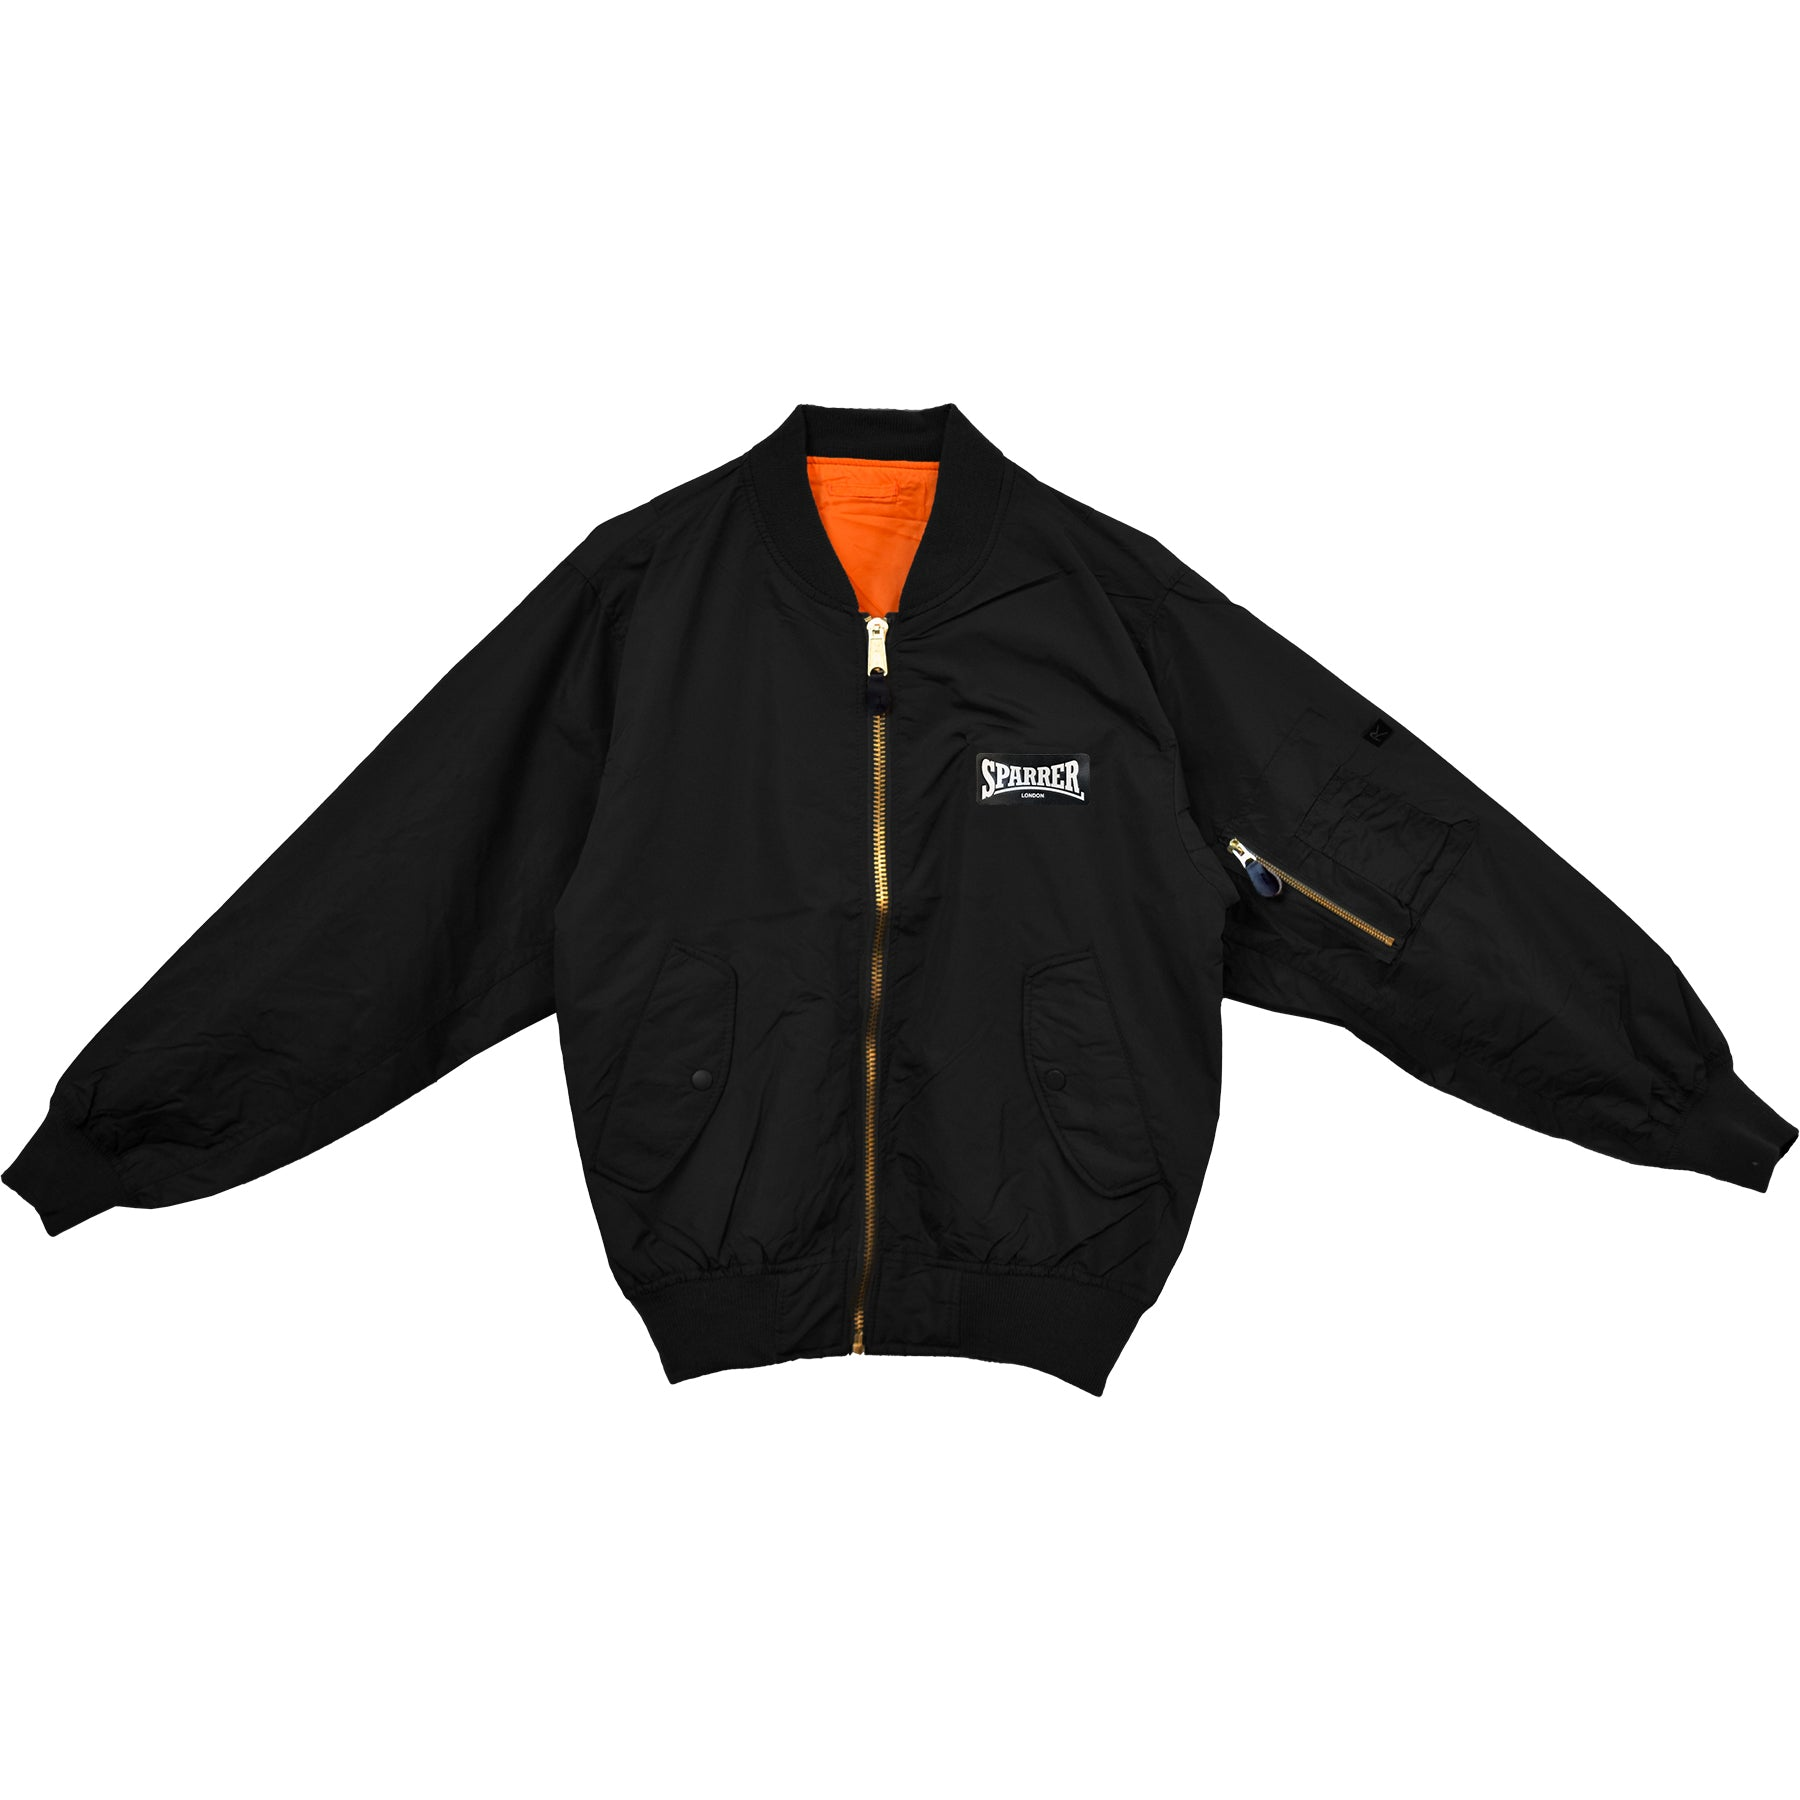 Cock Sparrer - Sparrer London - Bomber Jacket - Black - Fitted